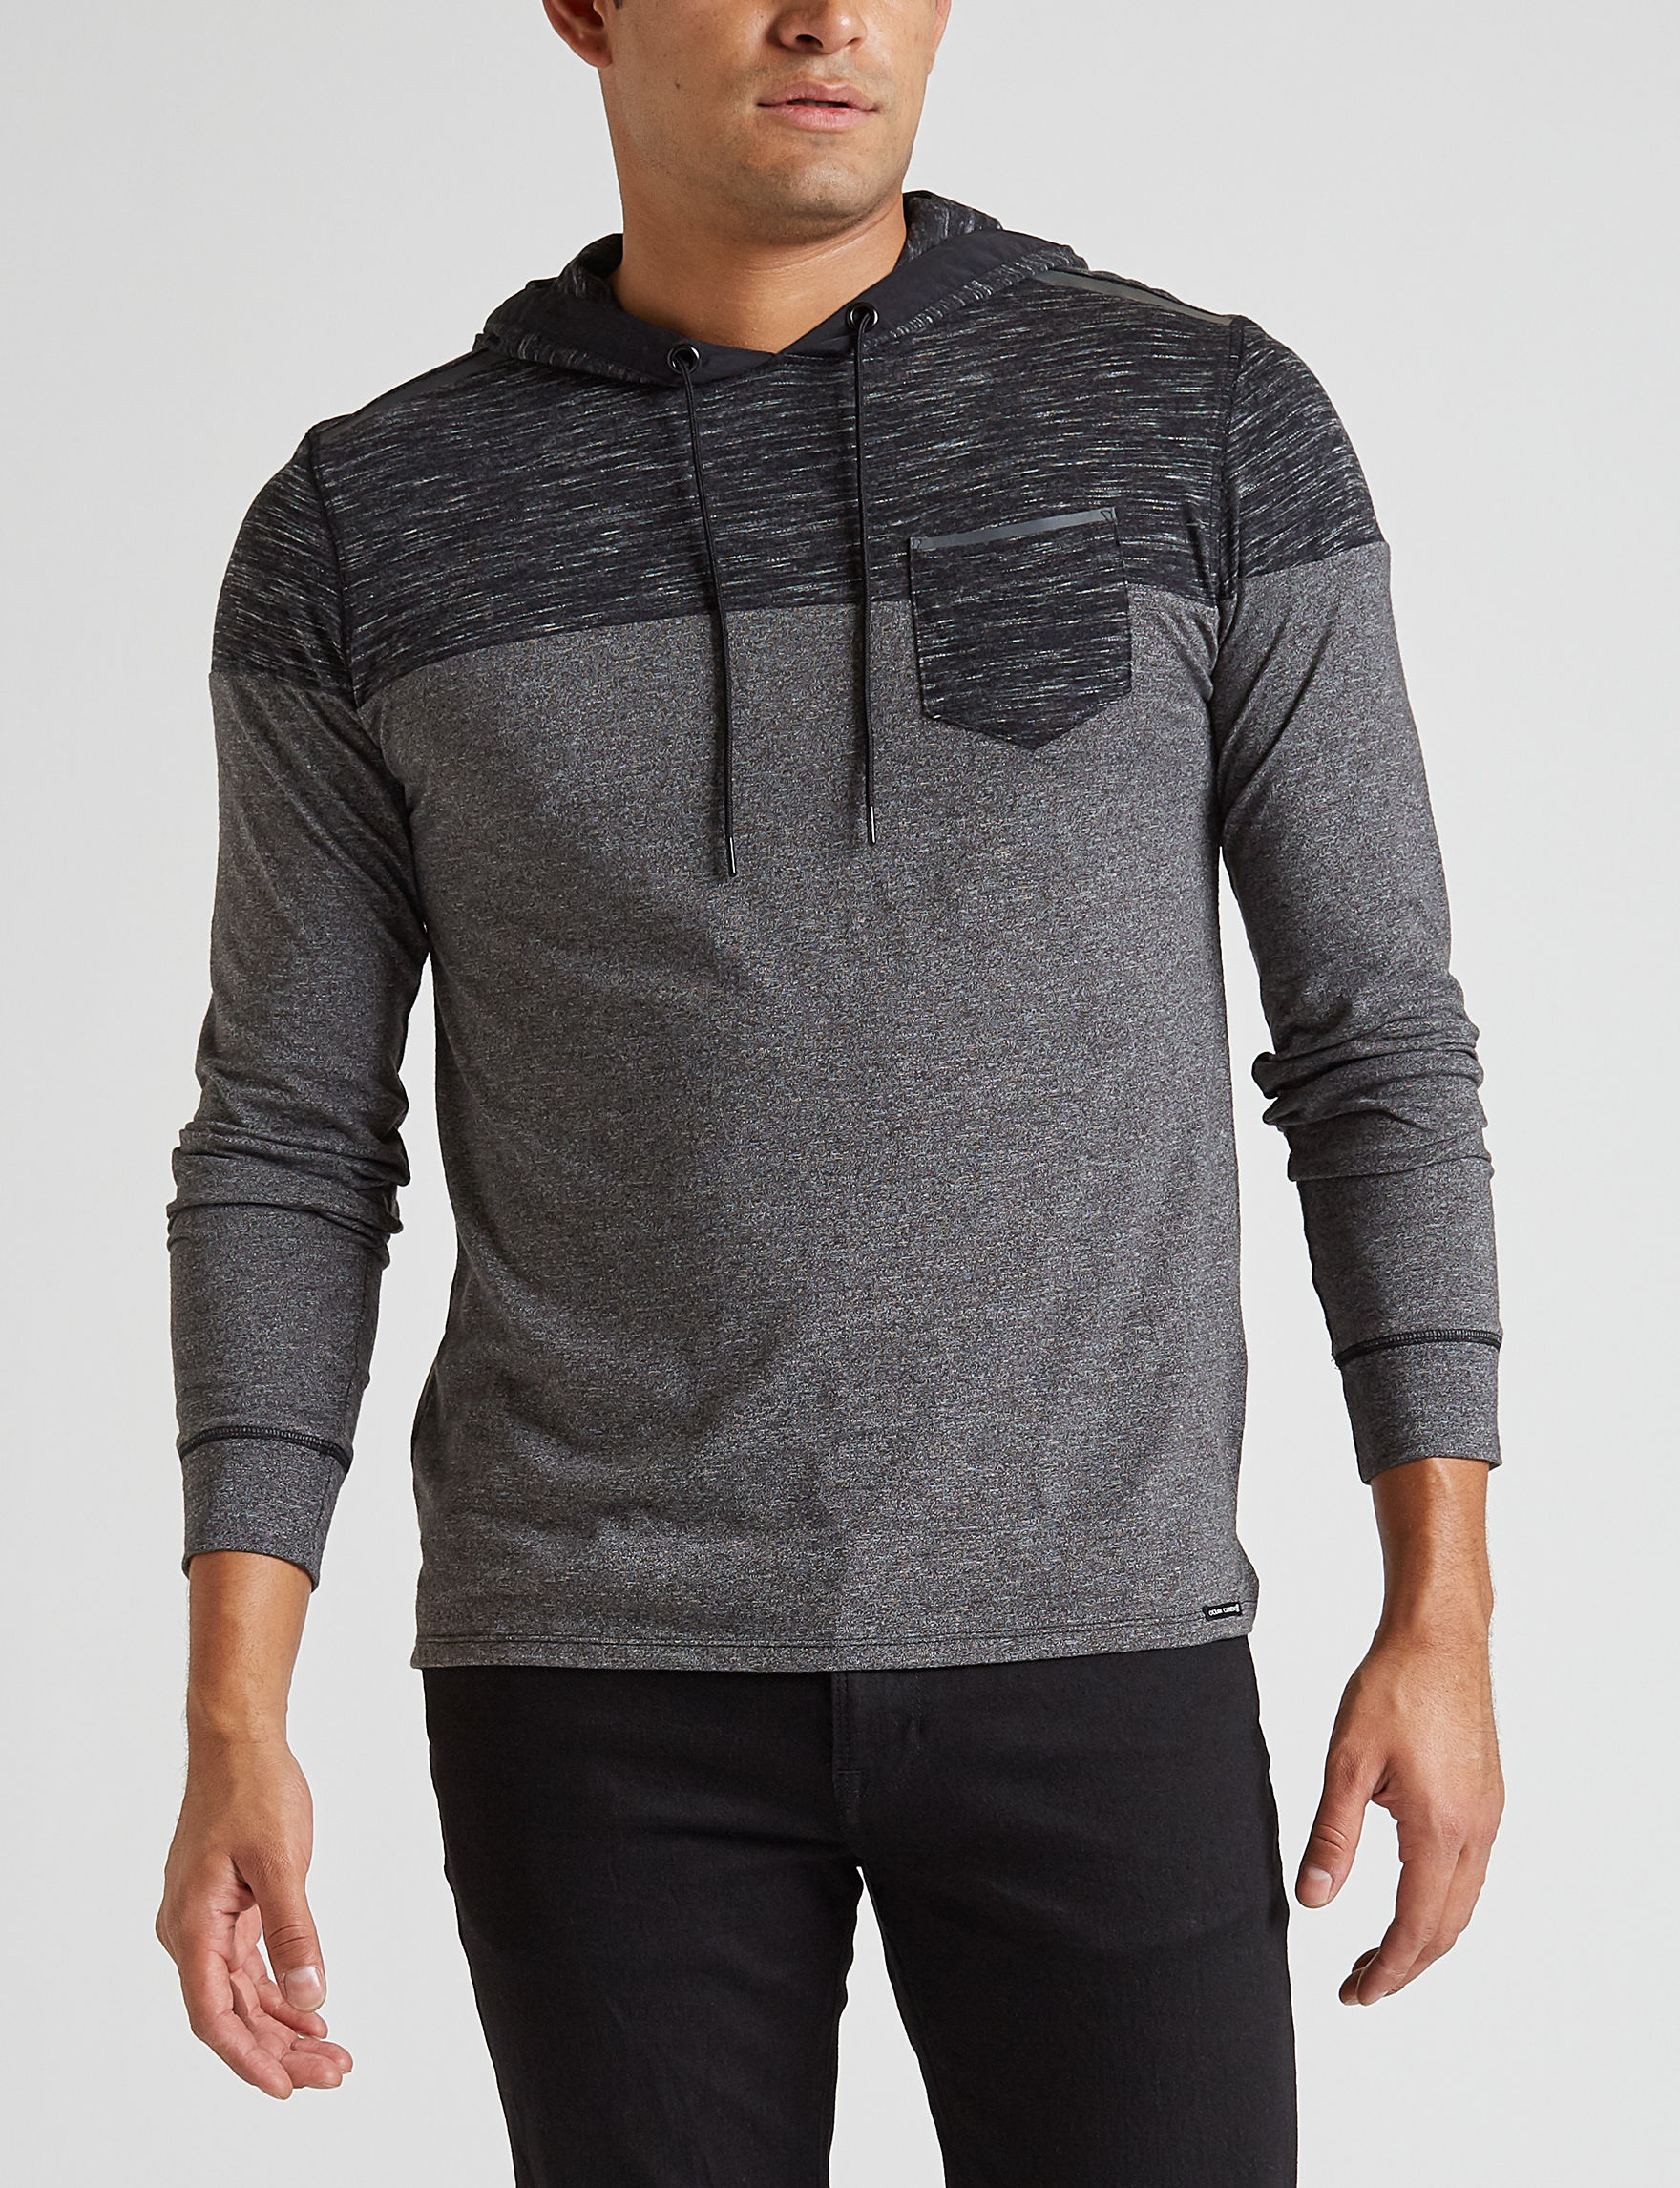 Ocean Current Black / Grey Pull-overs